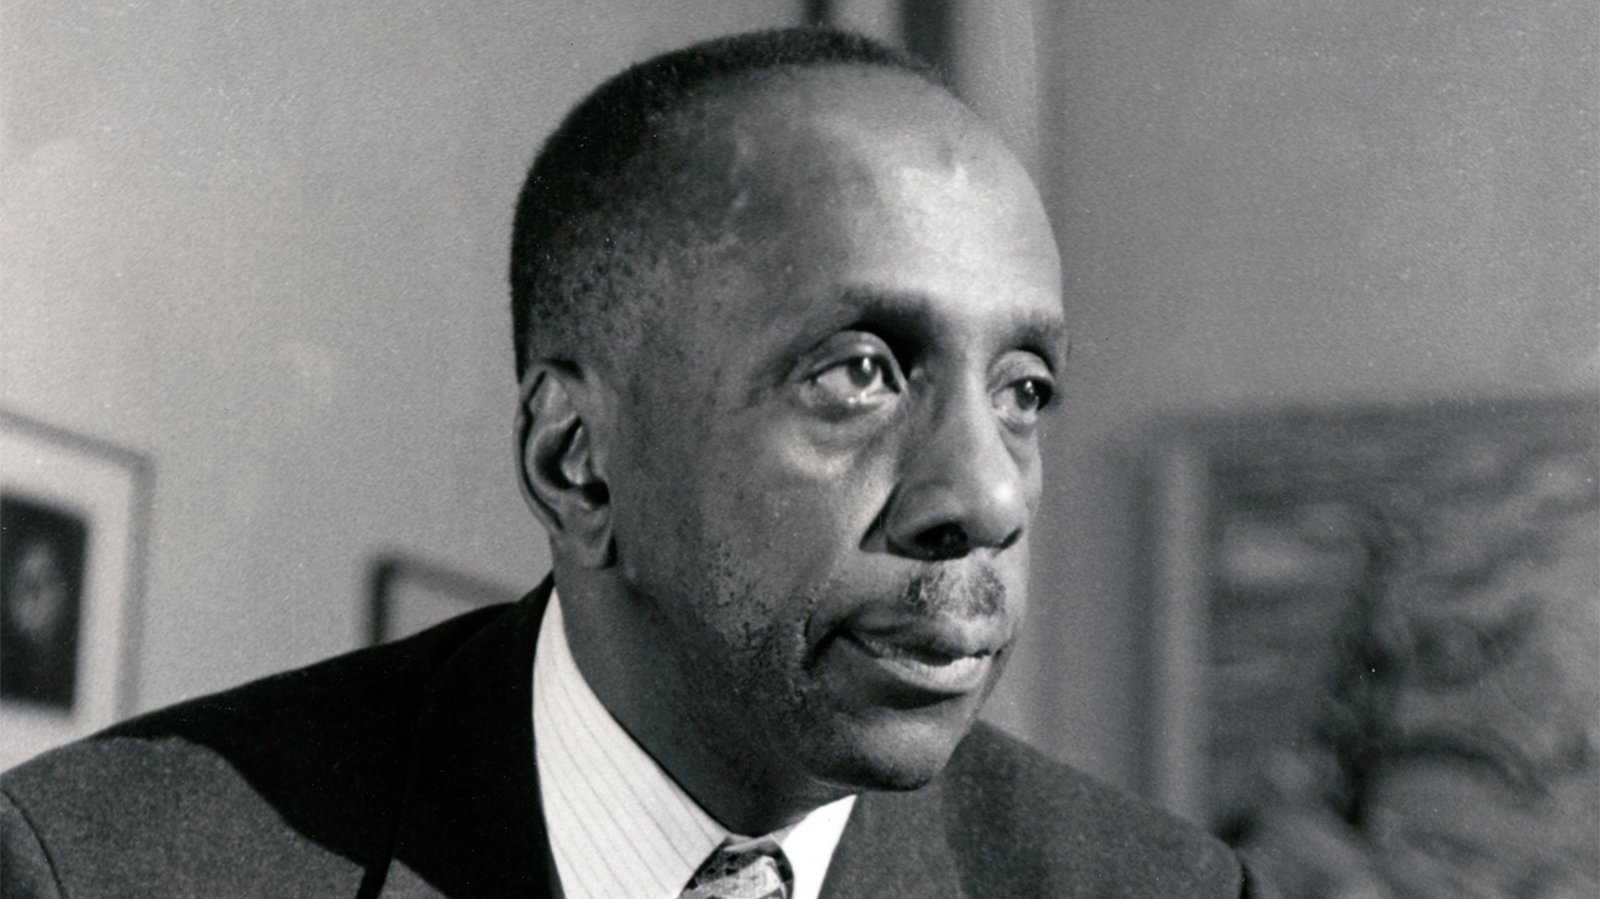 Howard Thurman, mentor to King who preached nonviolence ... on